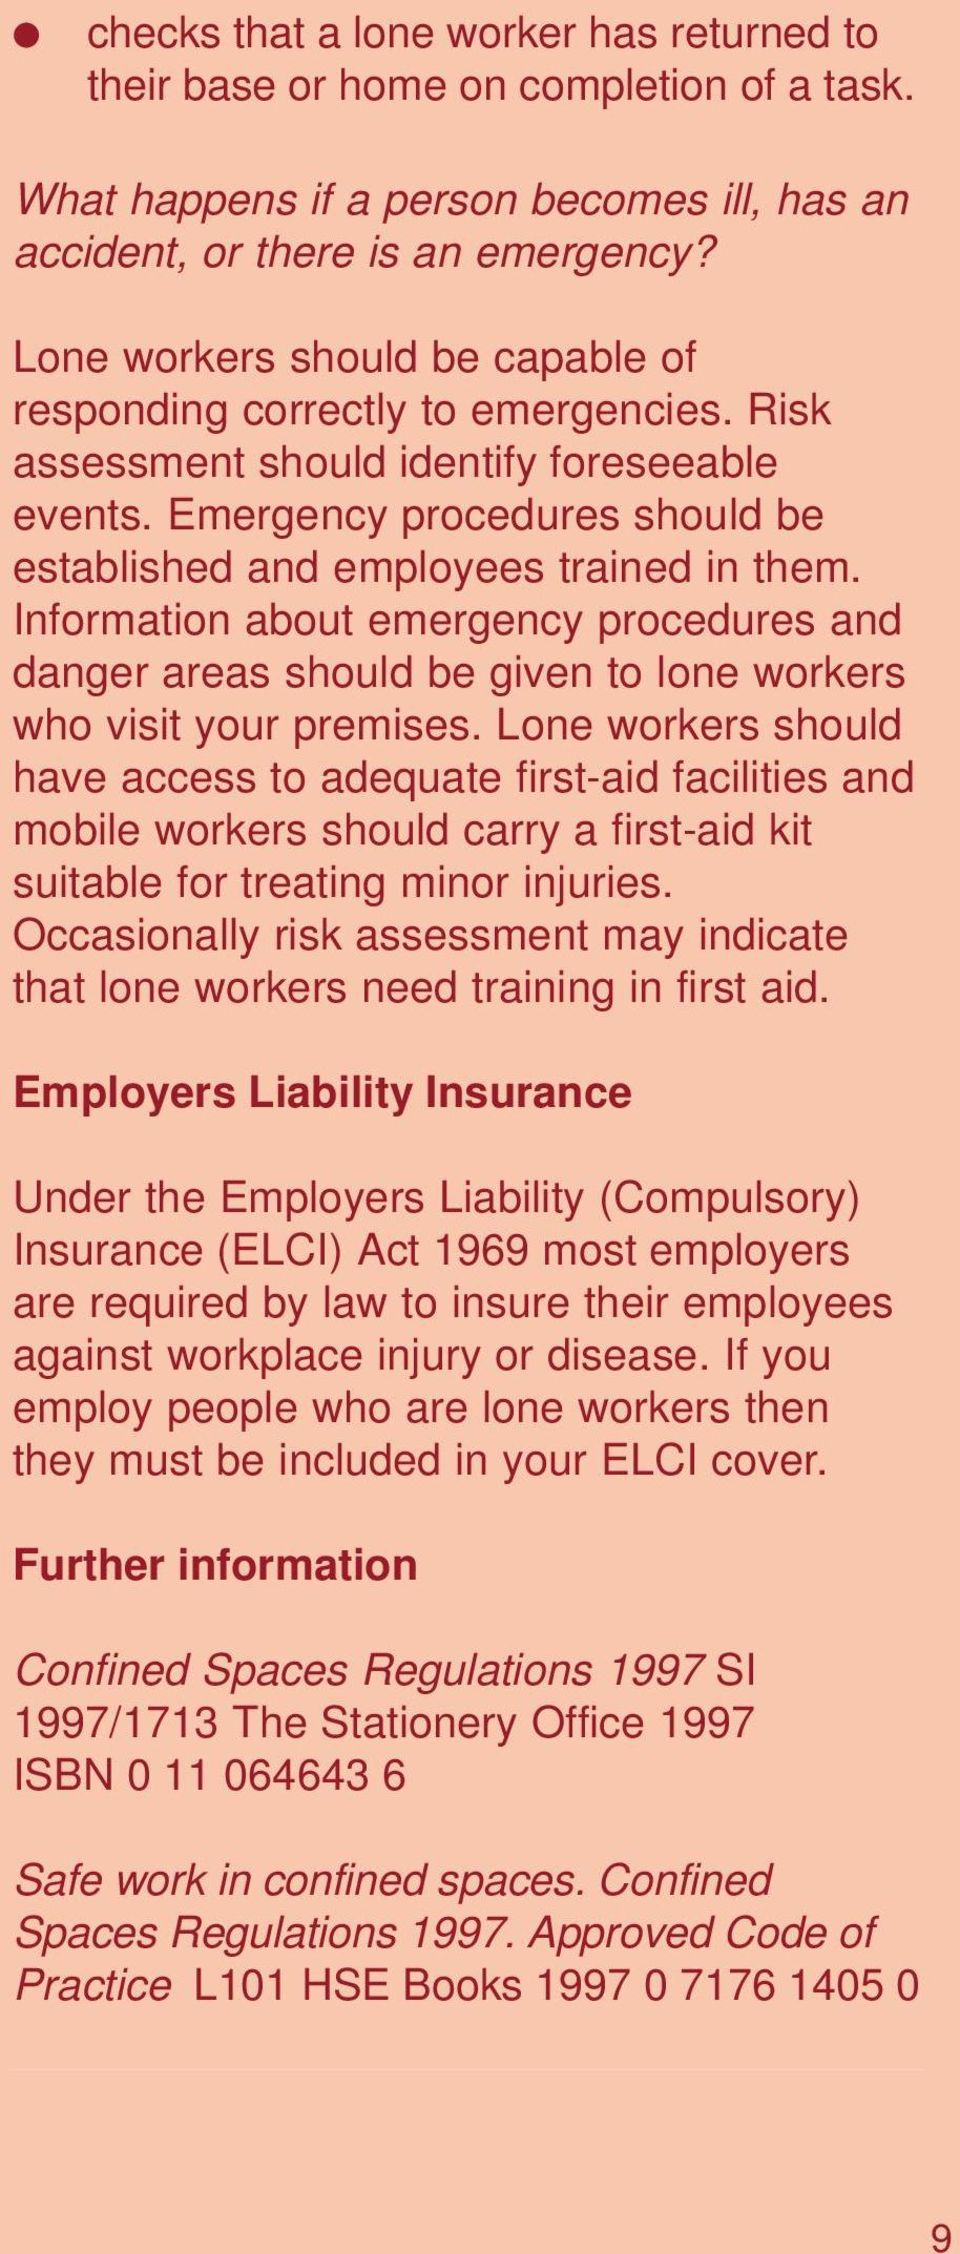 Information about emergency procedures and danger areas should be given to lone workers who visit your premises.